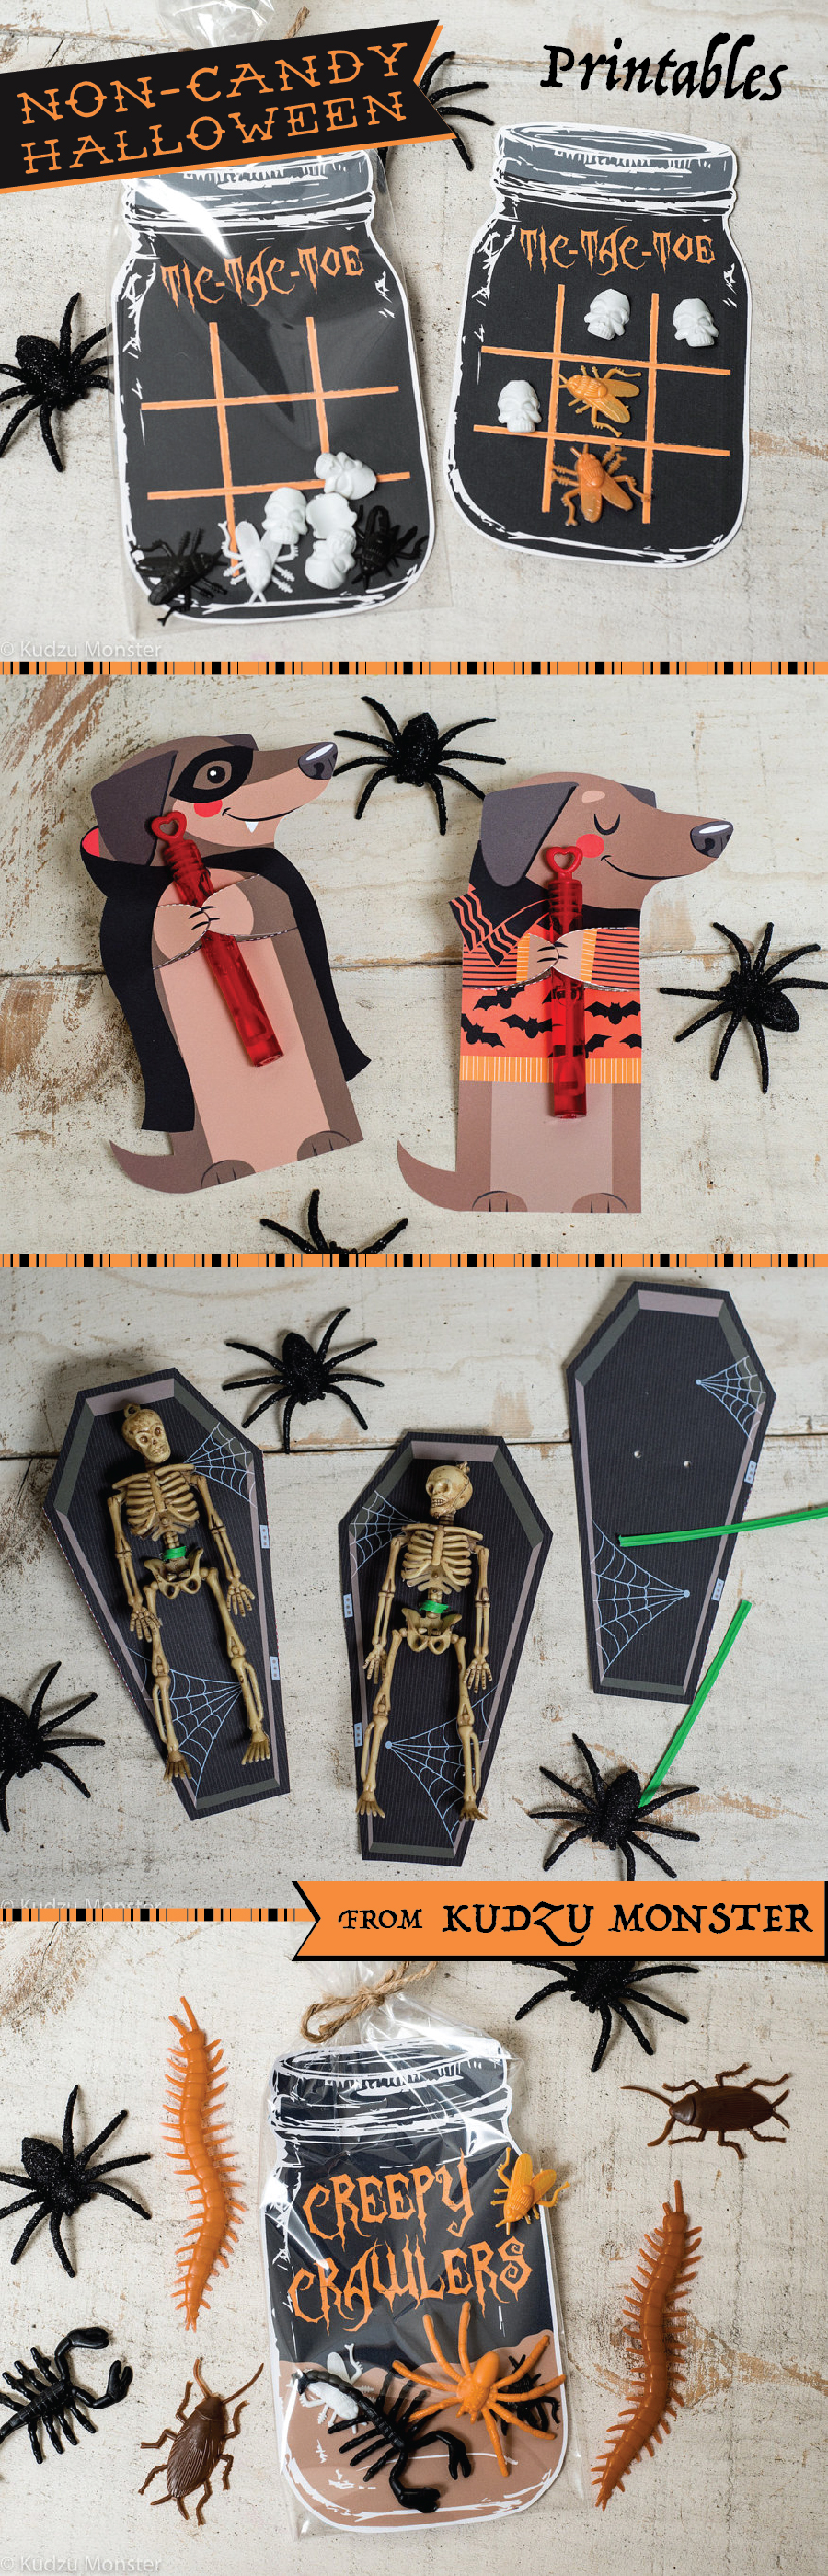 Easy NonCandy Halloween treat ideas using toys from the